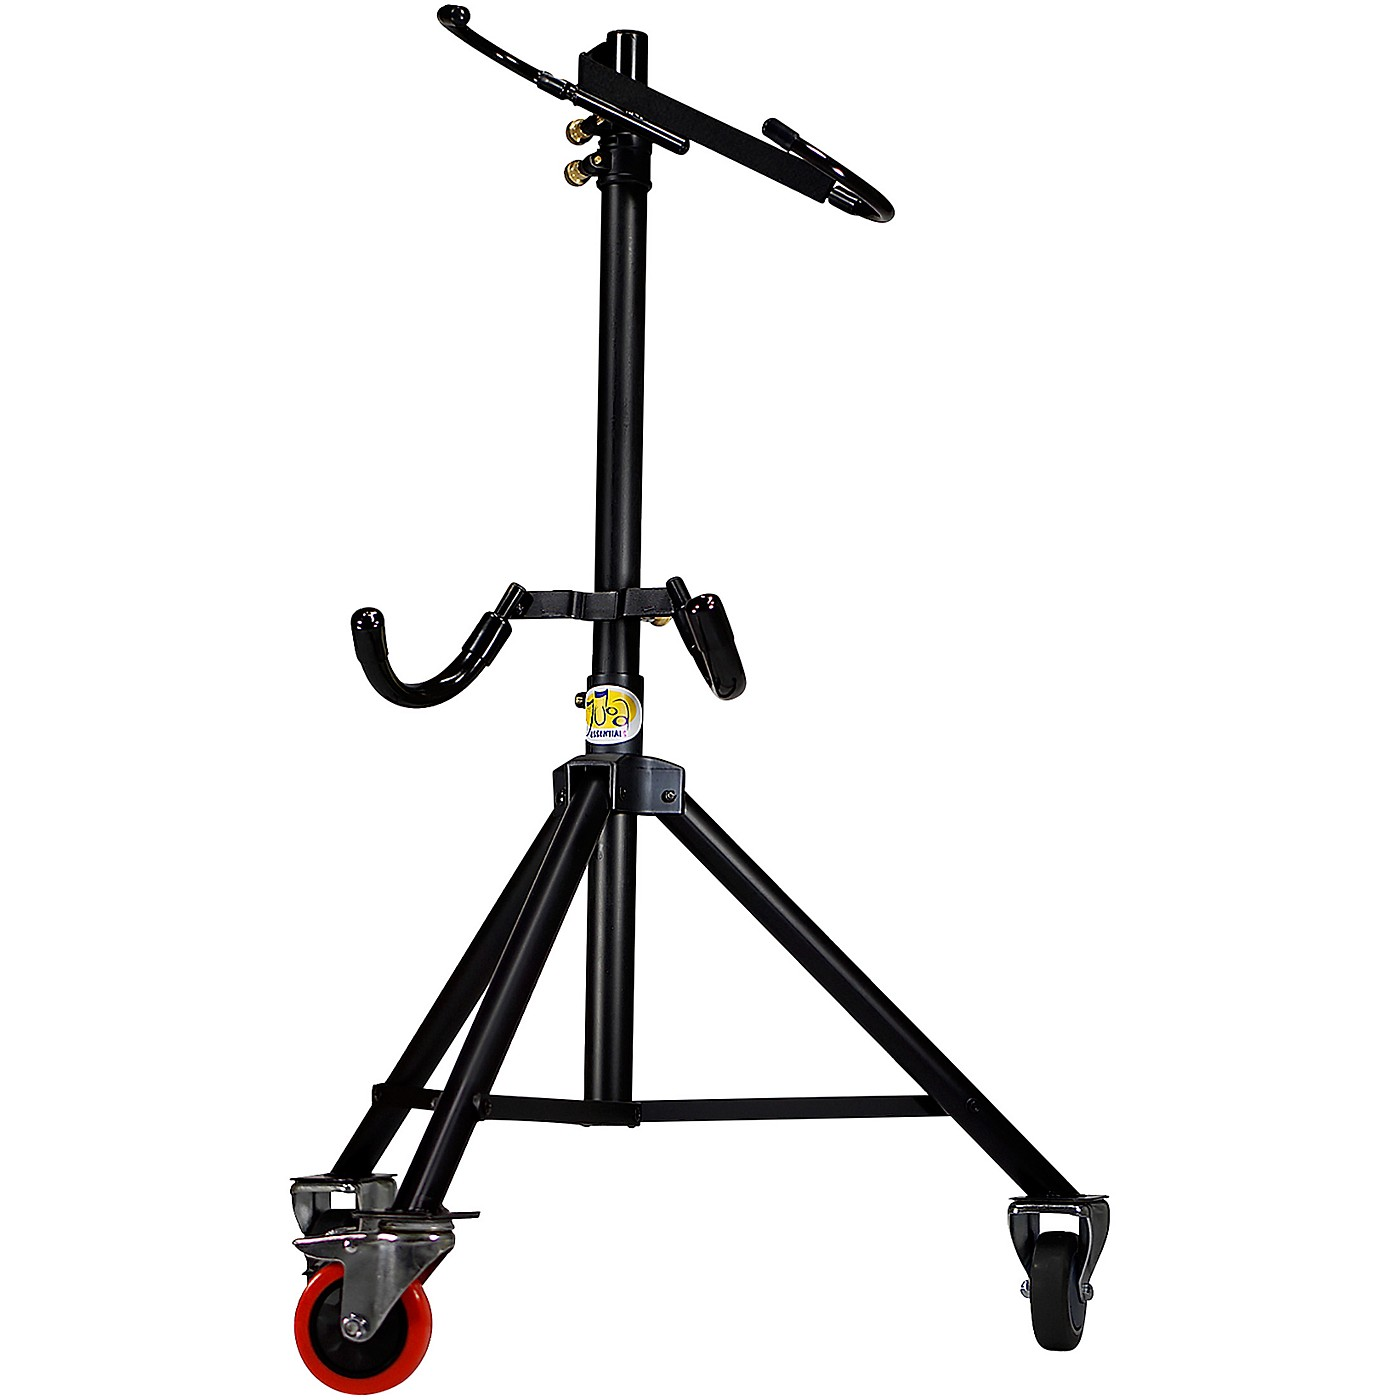 Tuba Essentials The Hug Adjustable Tuba Stand for 3/4 Size Left Side Mouthpiece Instruments thumbnail